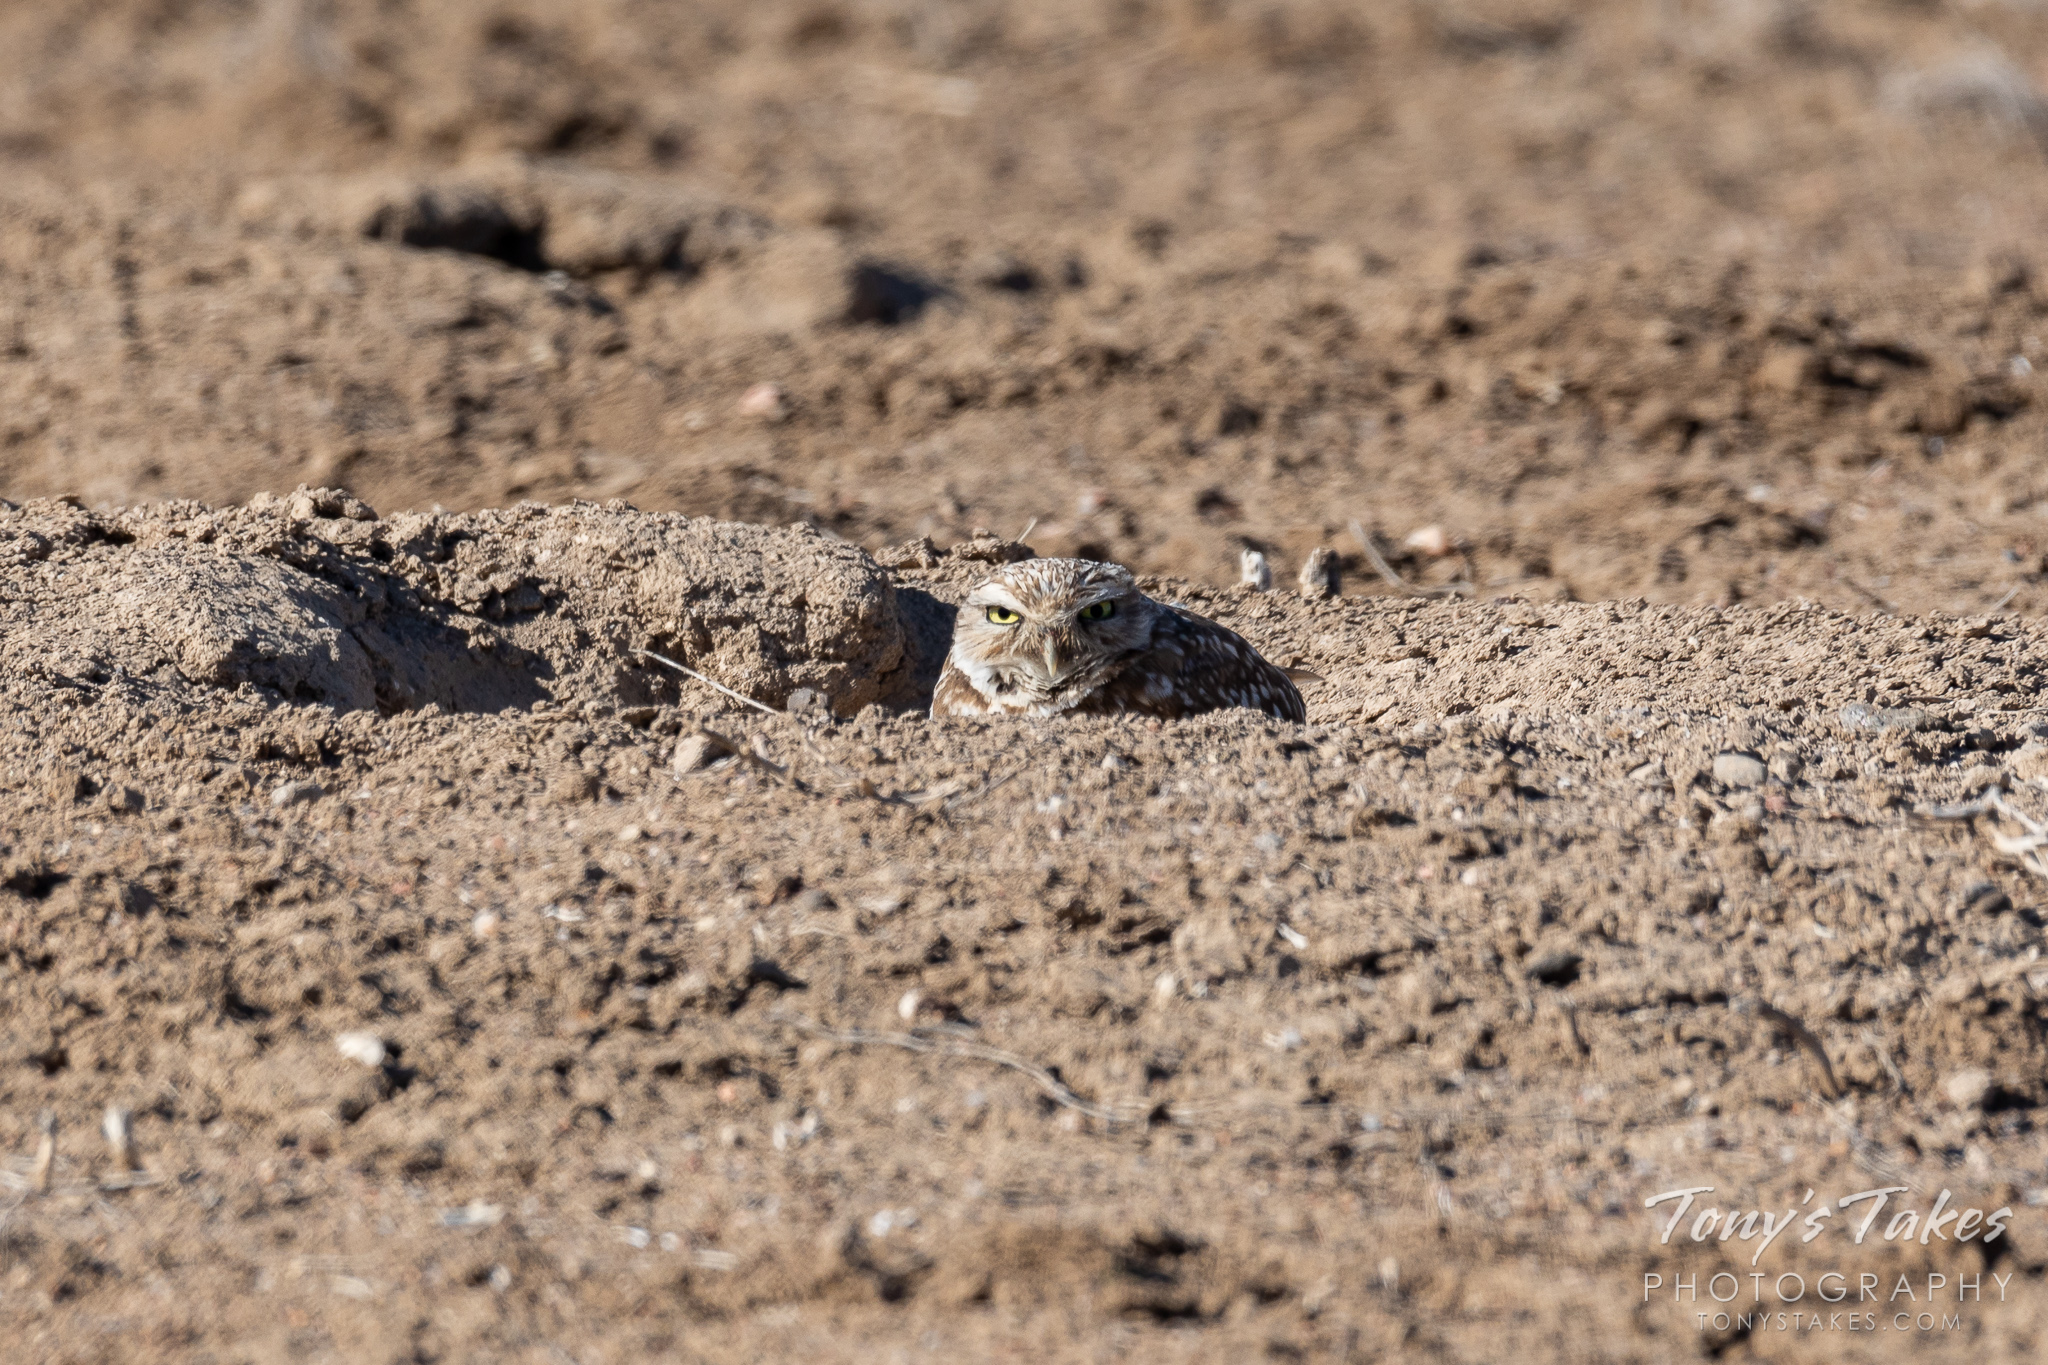 A burrowing owl keeps close watch from its burrow. (© Tony's Takes)